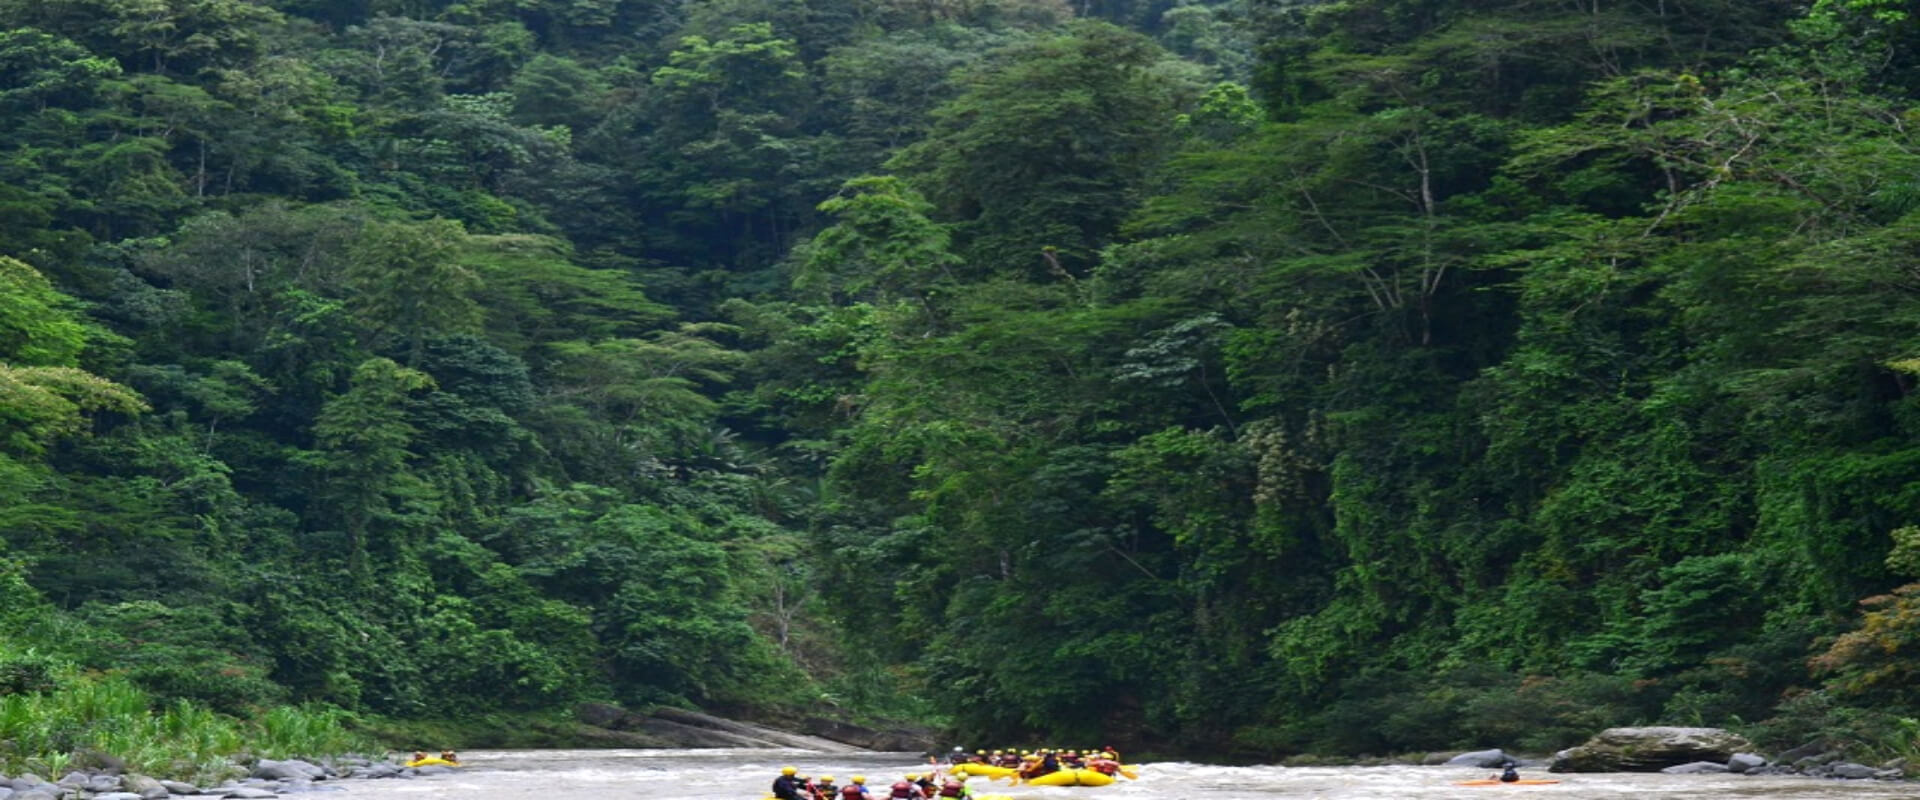 Pacuare River Rafting - 1 day | Costa Rica Jade Tours